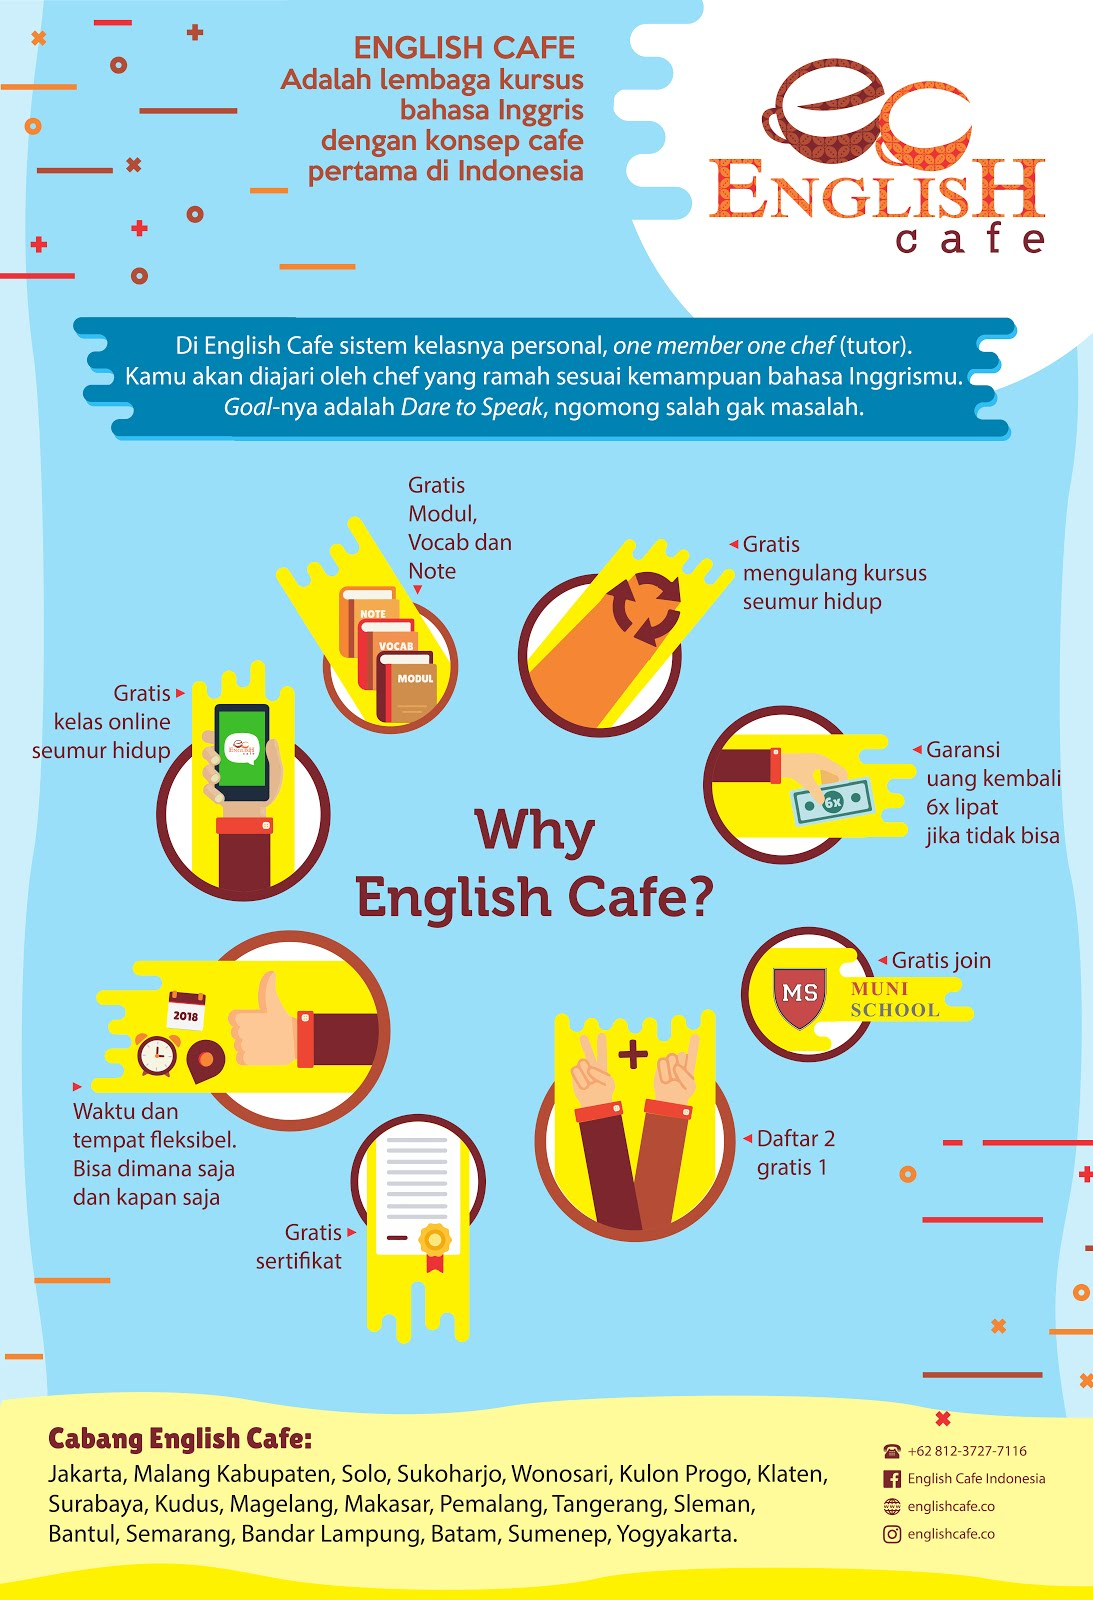 Kenapa English Cafe?